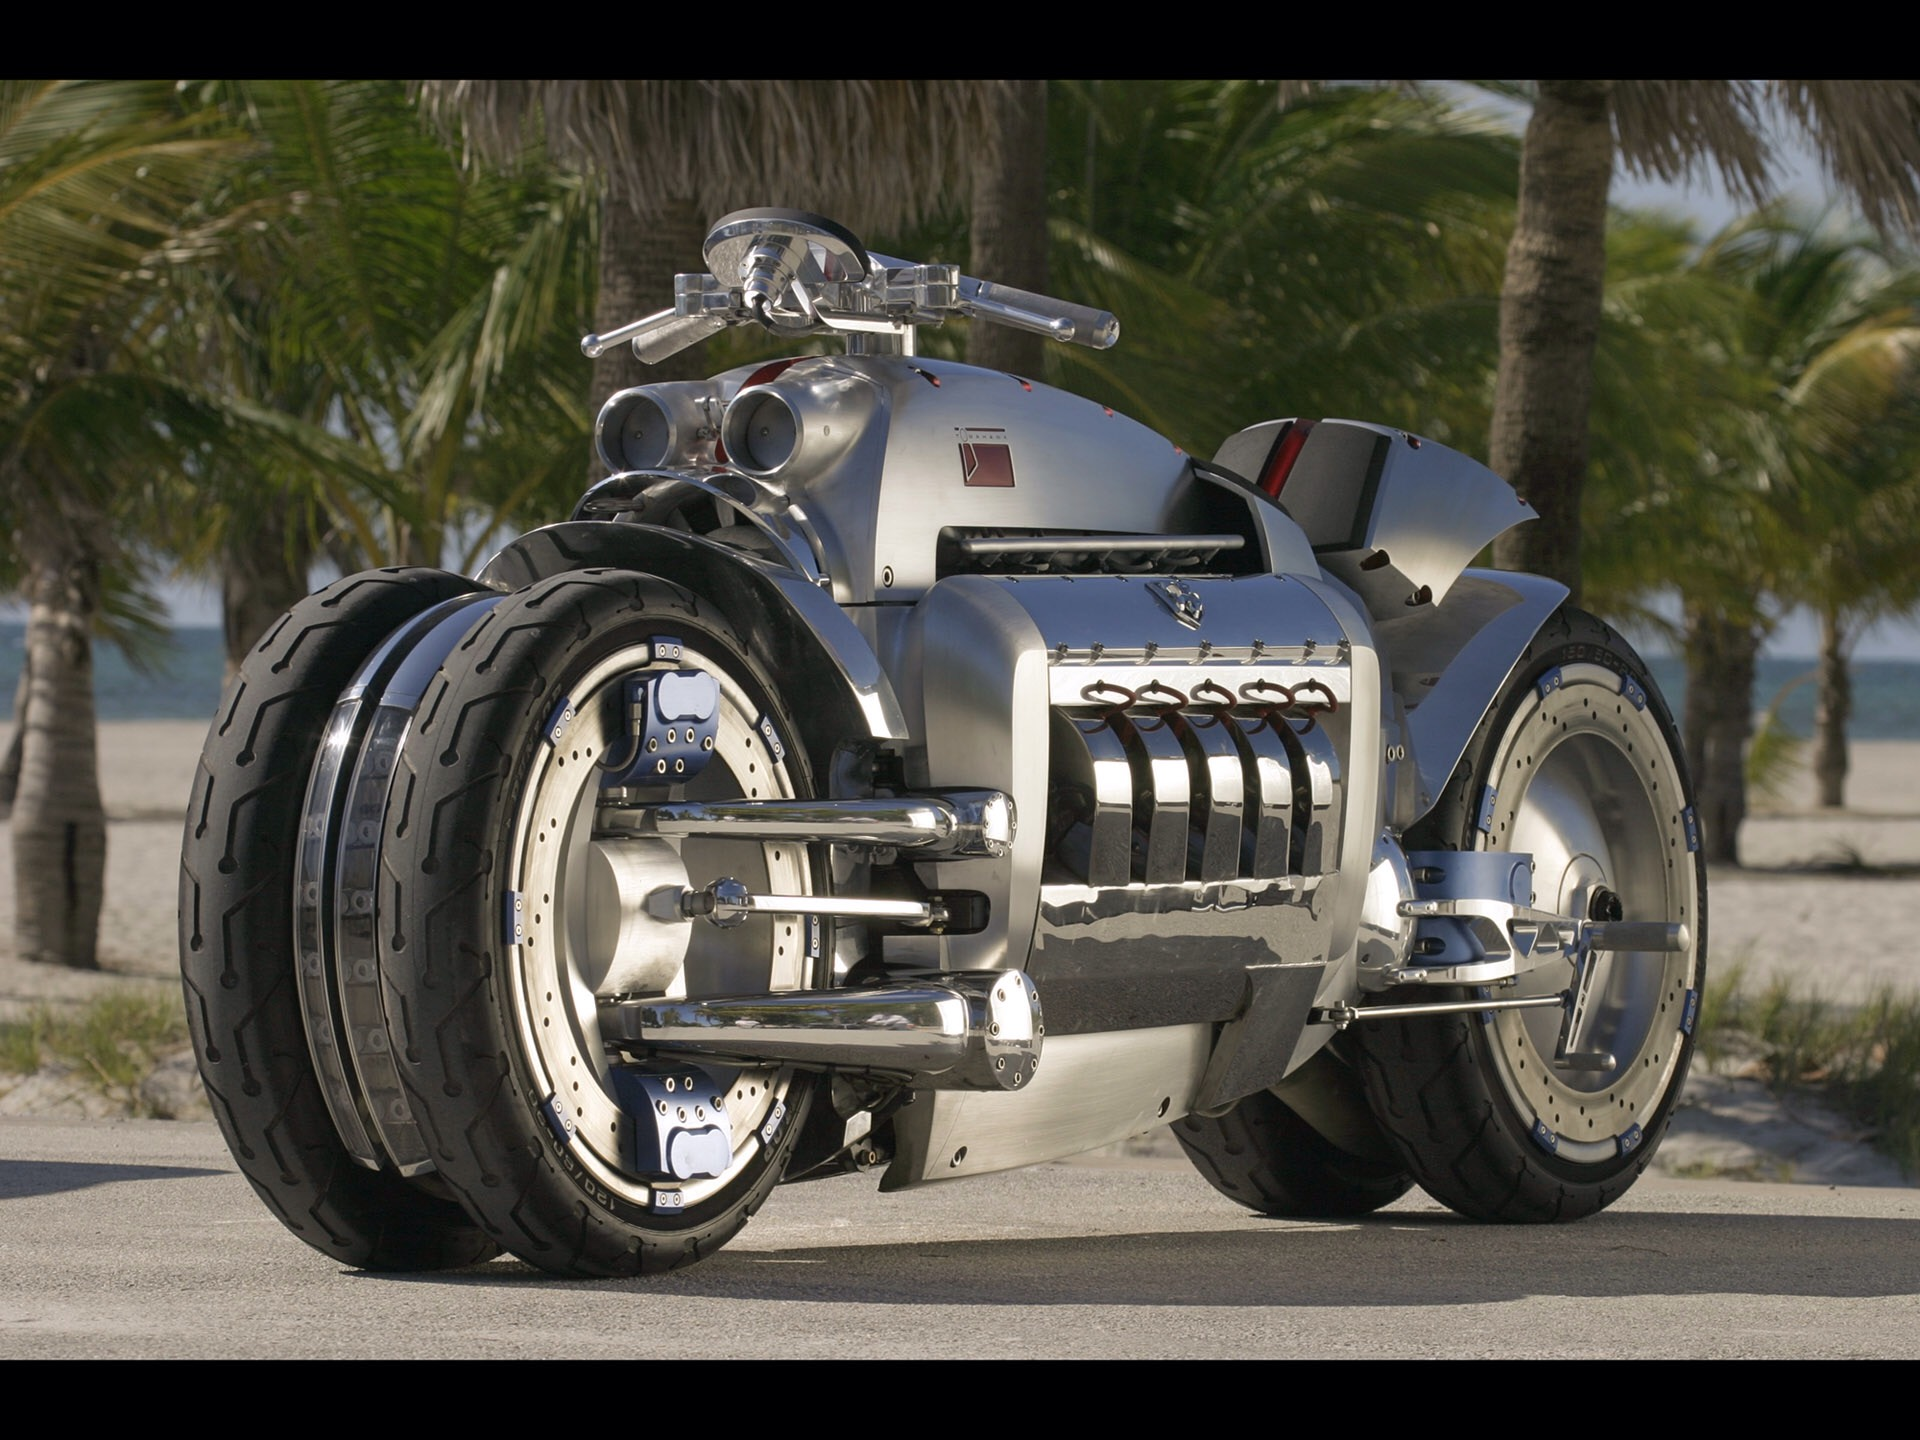 This 500bhp V8 Motorcycle Is A Two-Wheeled Muscle Car